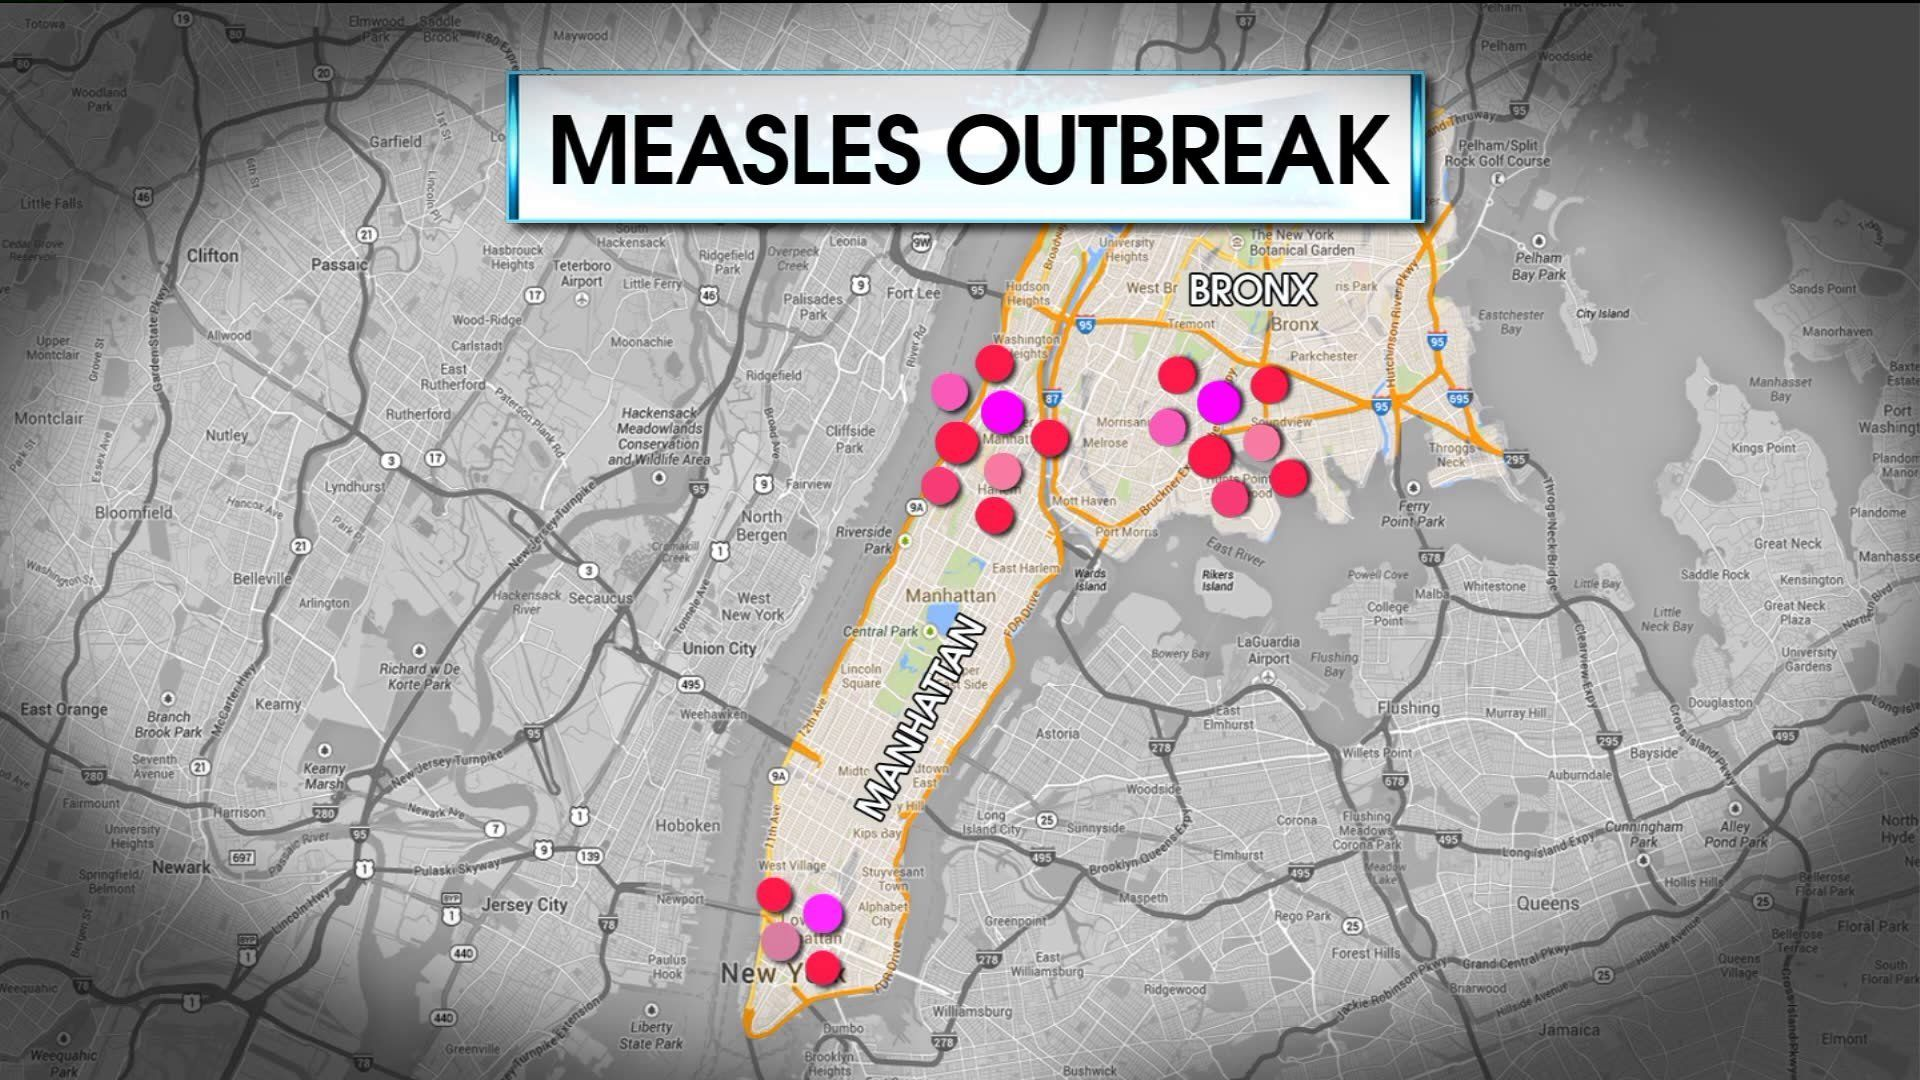 Pin on Measles